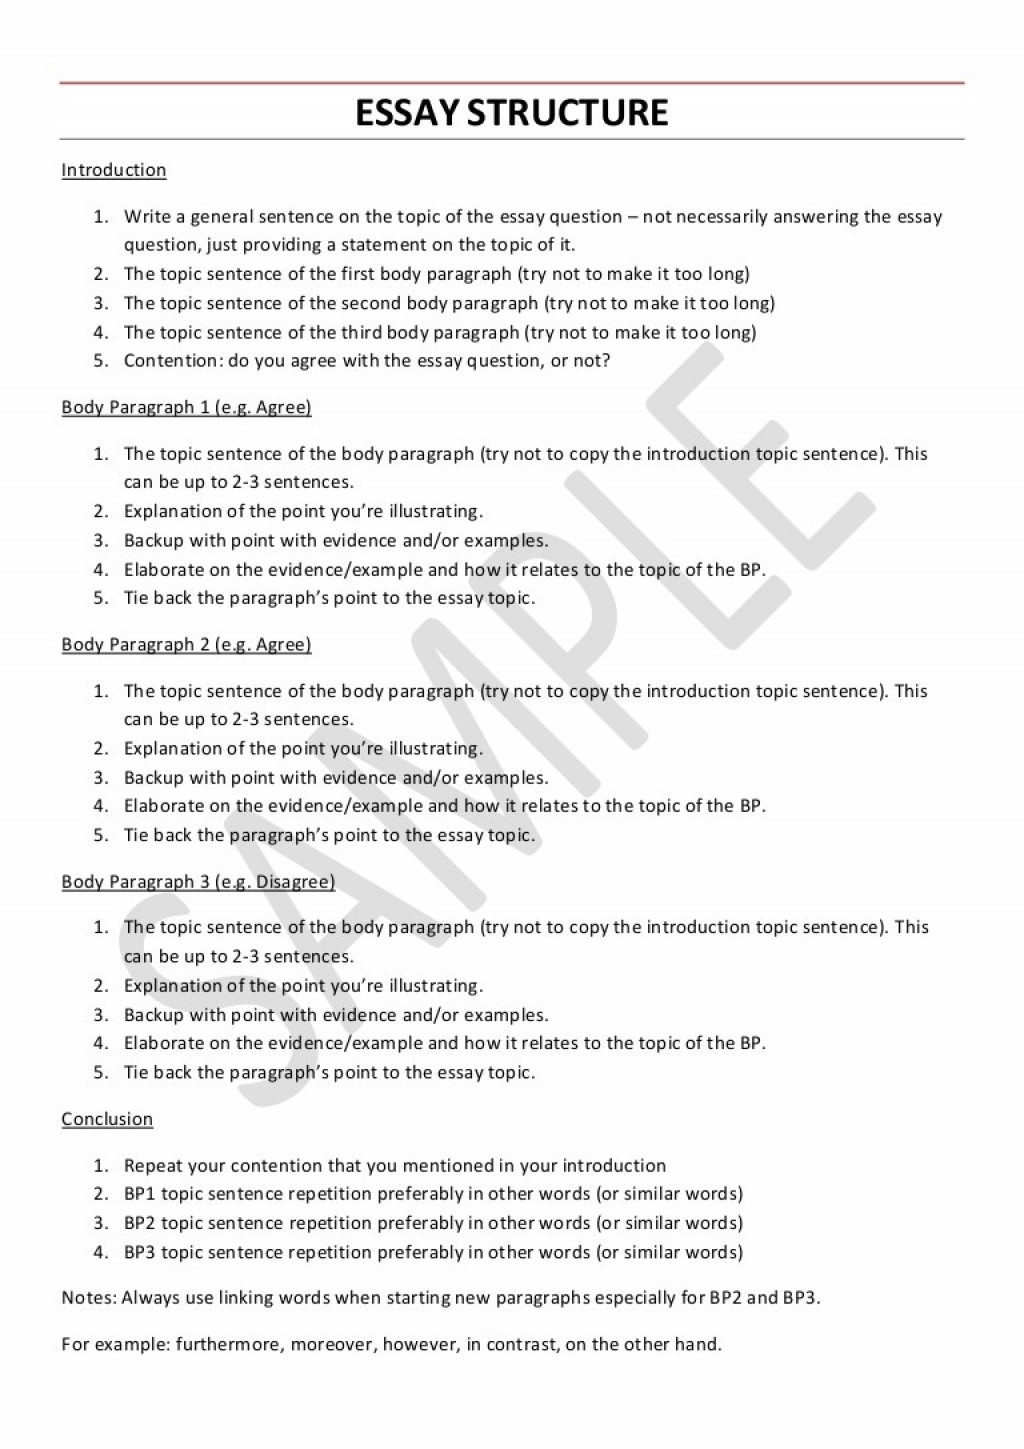 021 Good Topic For College English Research Paper Essaystructure Phpapp02 Thumbnail Formidable Large